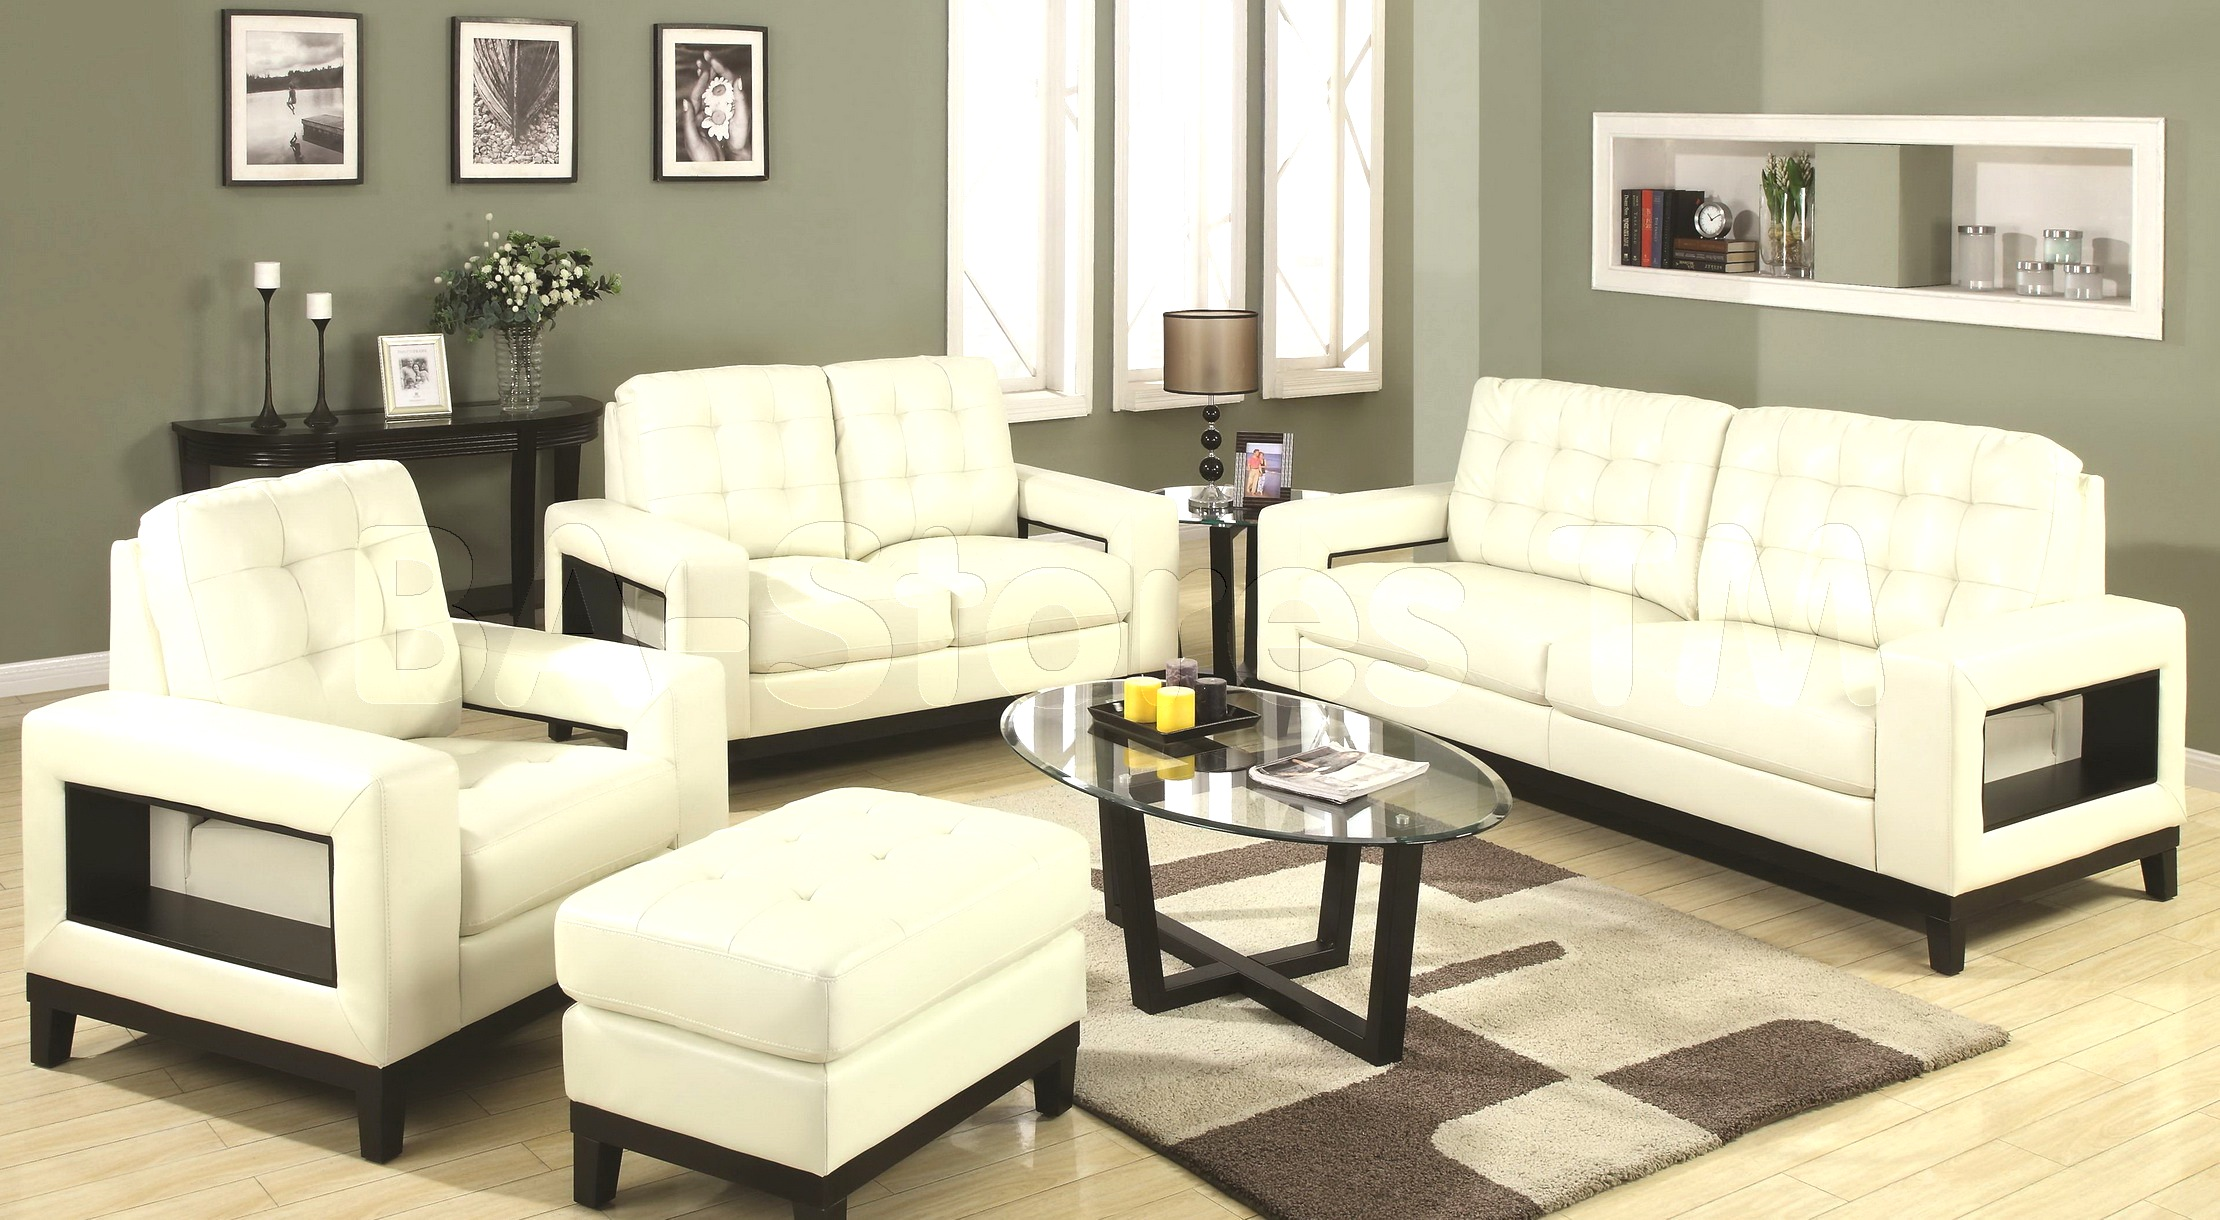 25 latest sofa set designs for living room furniture ideas for Sofa set designs for living room